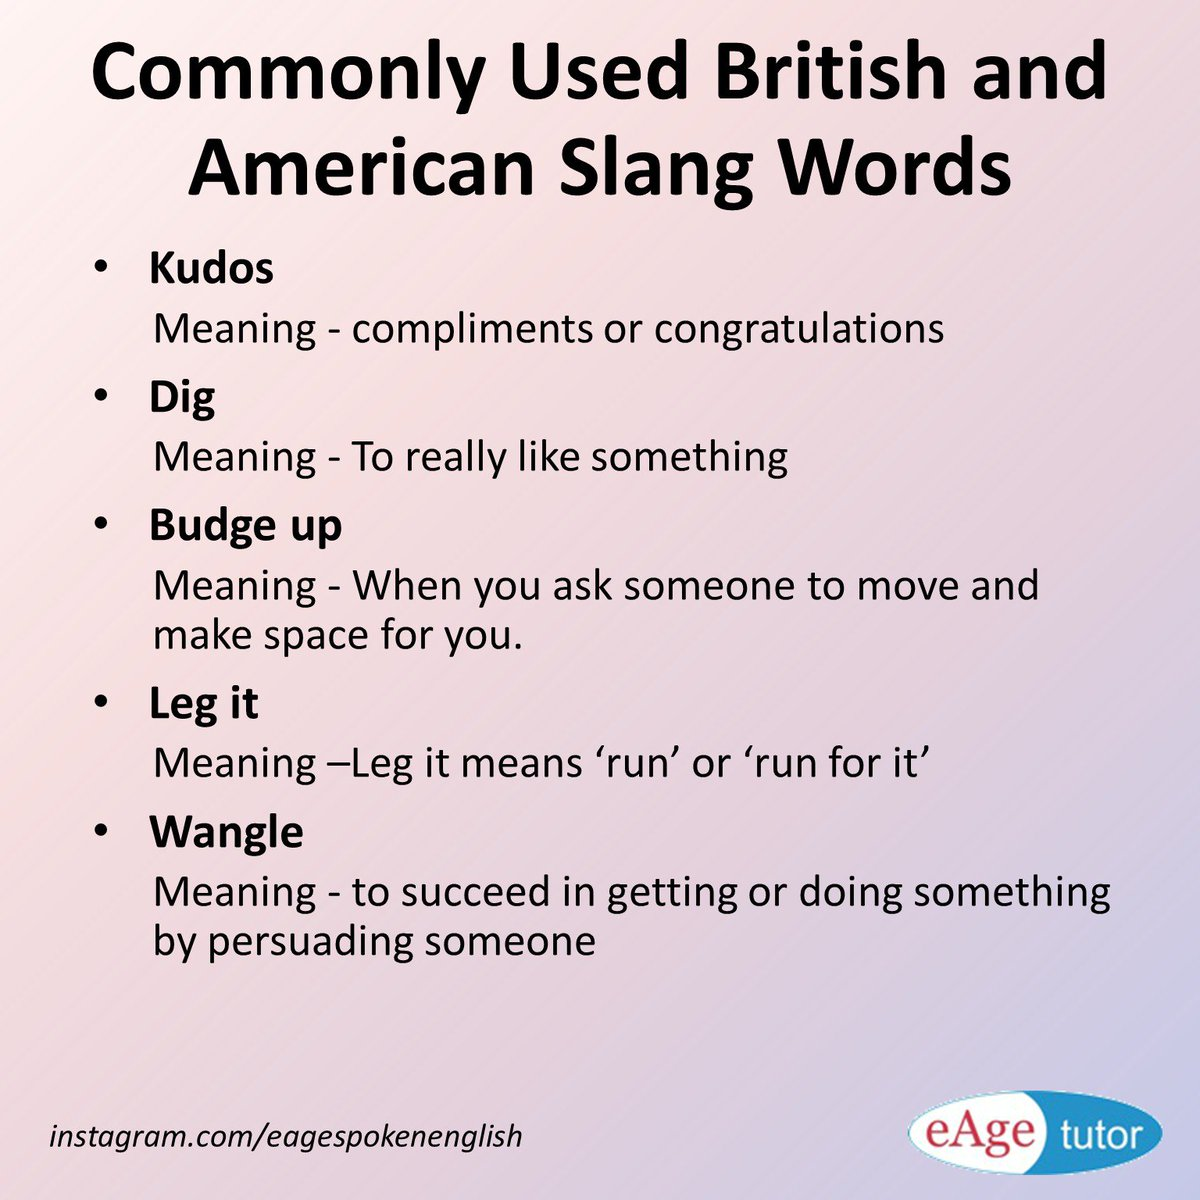 recipe: slang words meaning [6]